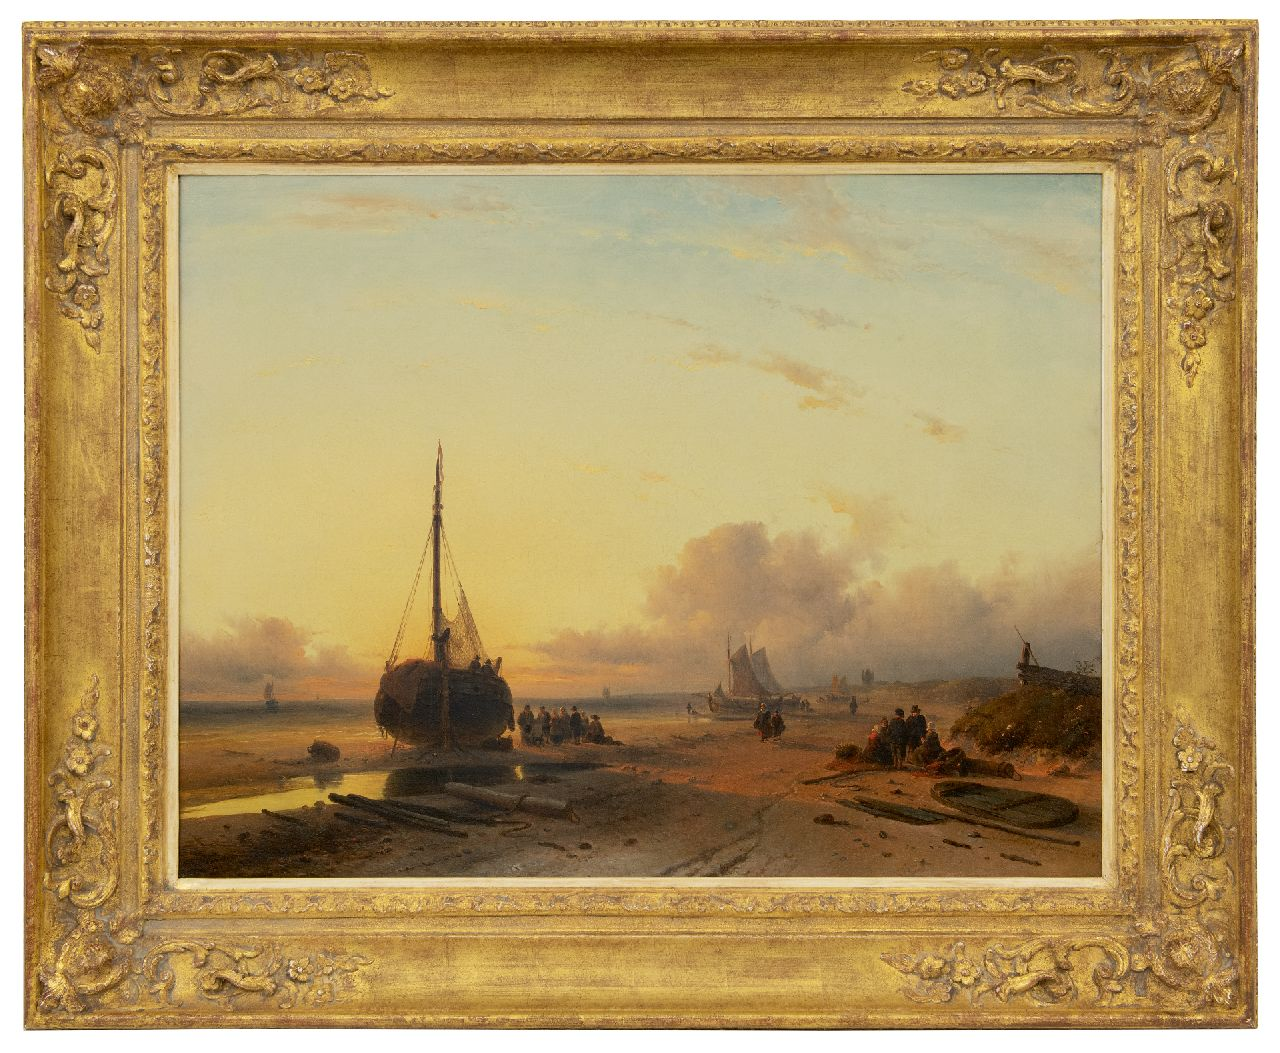 Leickert C.H.J.  | 'Charles' Henri Joseph Leickert, Fishing vessels on a beach at sunset, oil on canvas 58.0 x 75.0 cm, signed l.r. and dated 'London' 1845